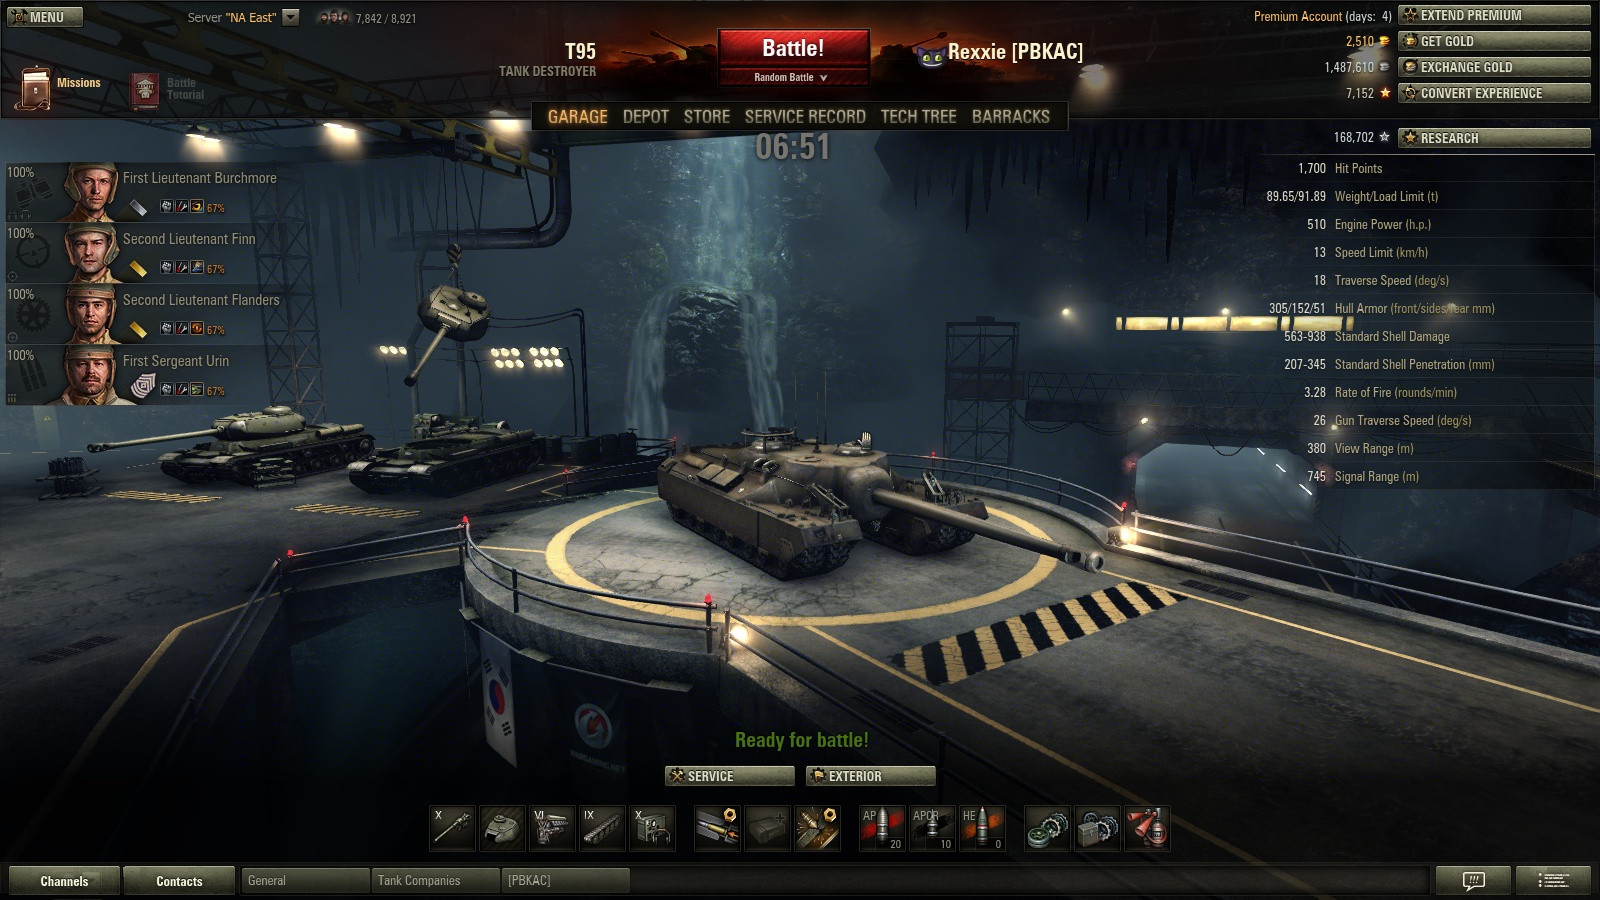 World of Tanks - The Angry Ducks Clan Official Website